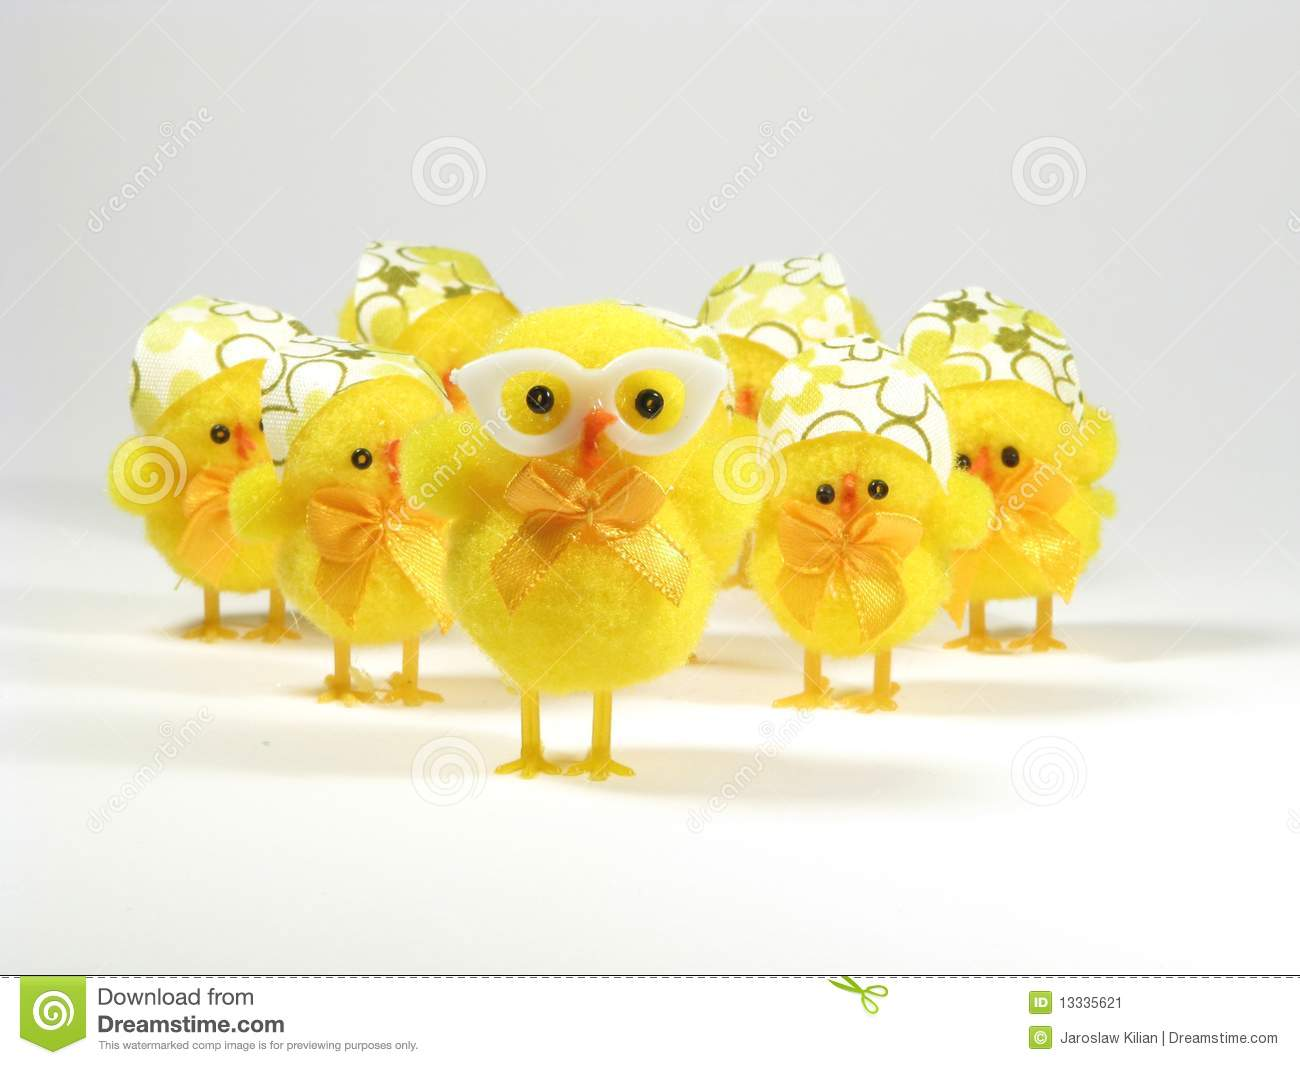 Easter Chicken Family Stock Image - Image: 13335621